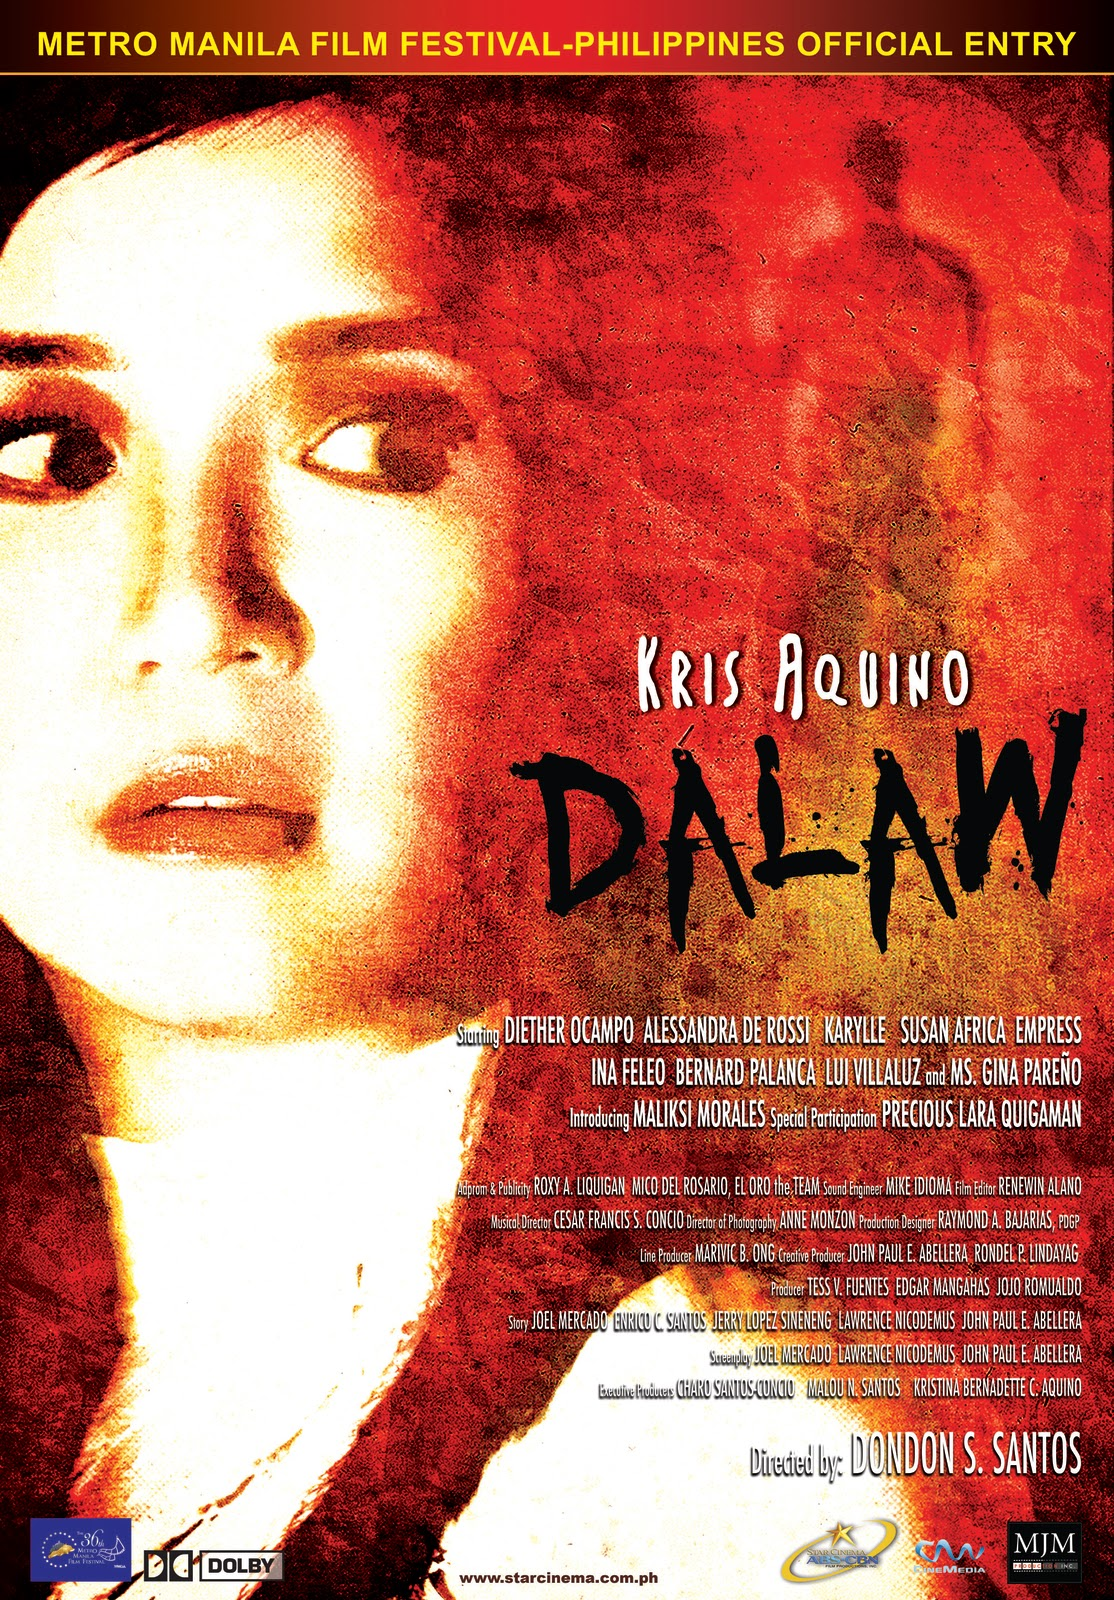 dalaw-official-movie-poster.jpg